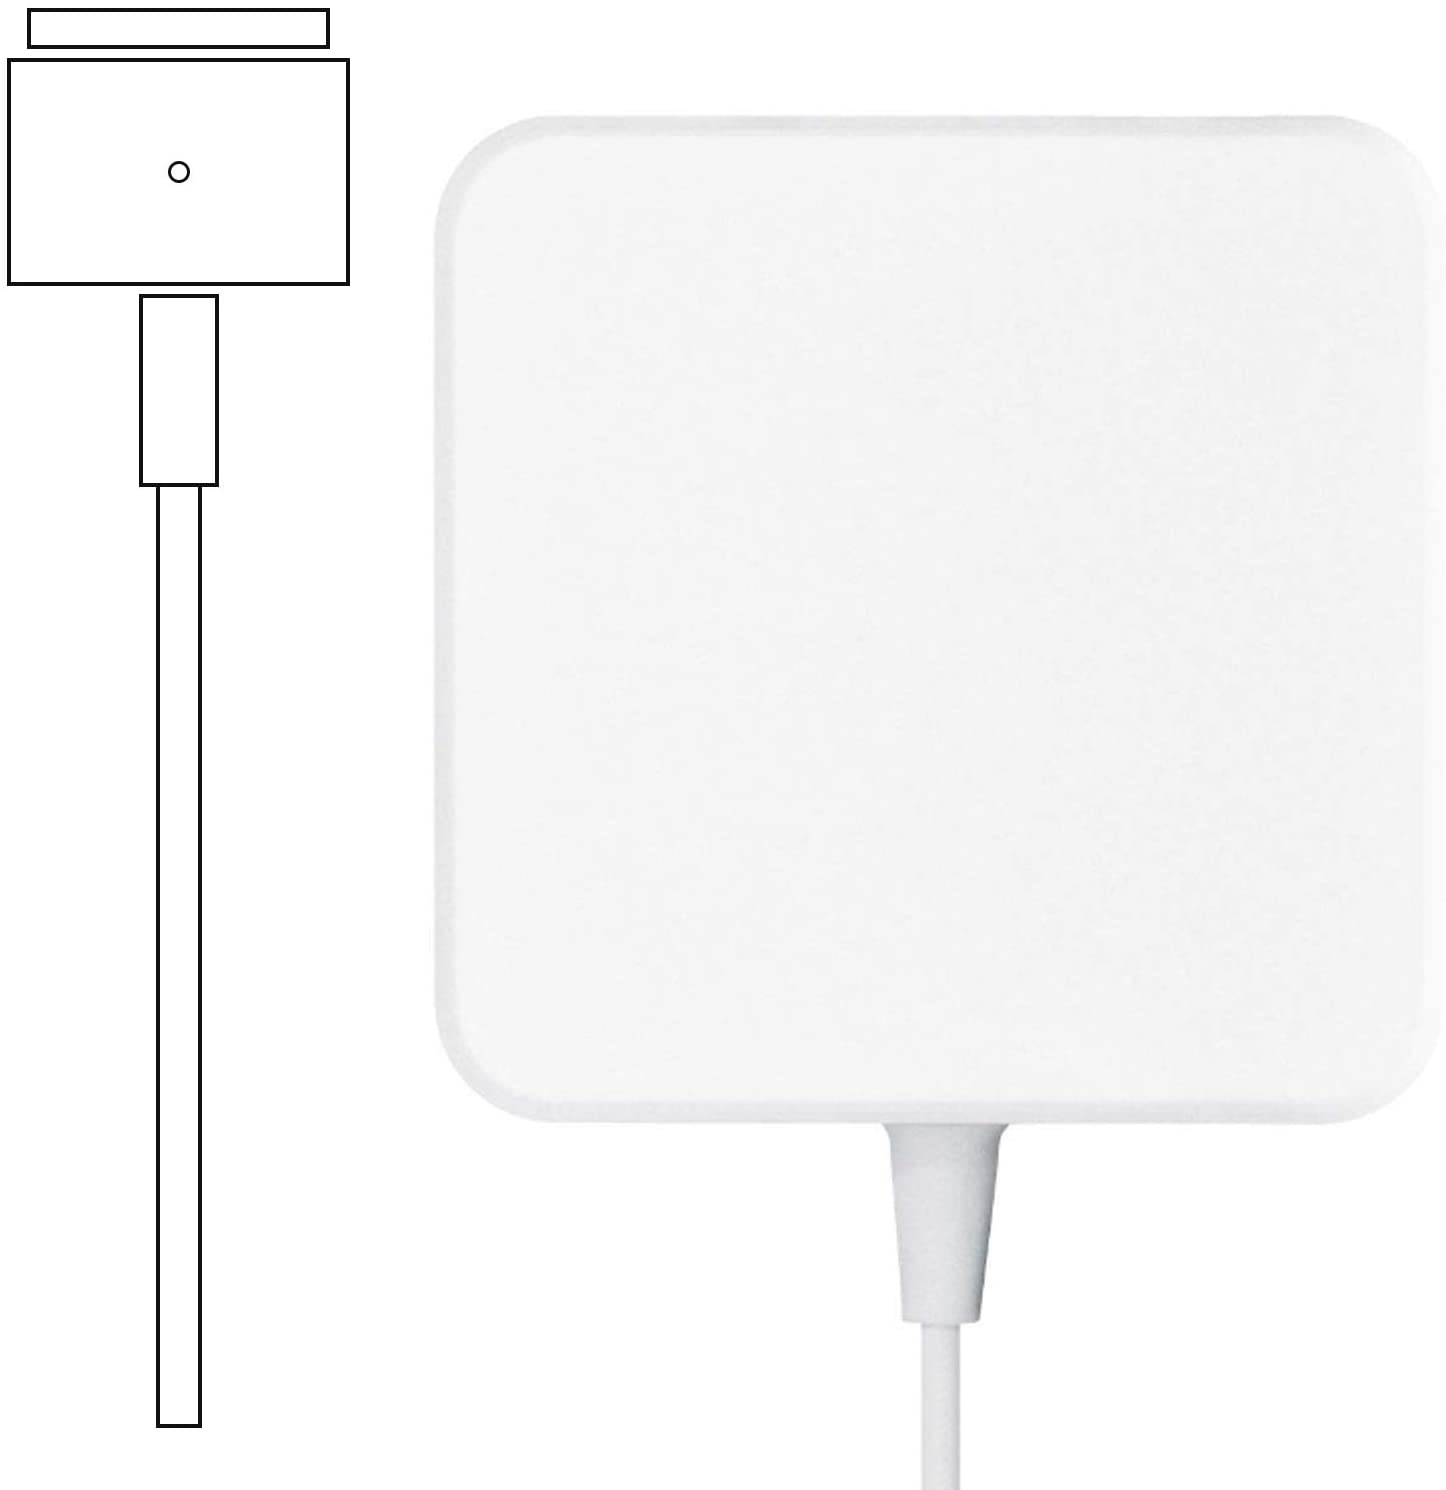 Mac Book Pro Charger, Replacement Magnetic 60W T-Tip, Power Adapter Compatible with Mac Book Charger/Mac Book air( After Late 2012)